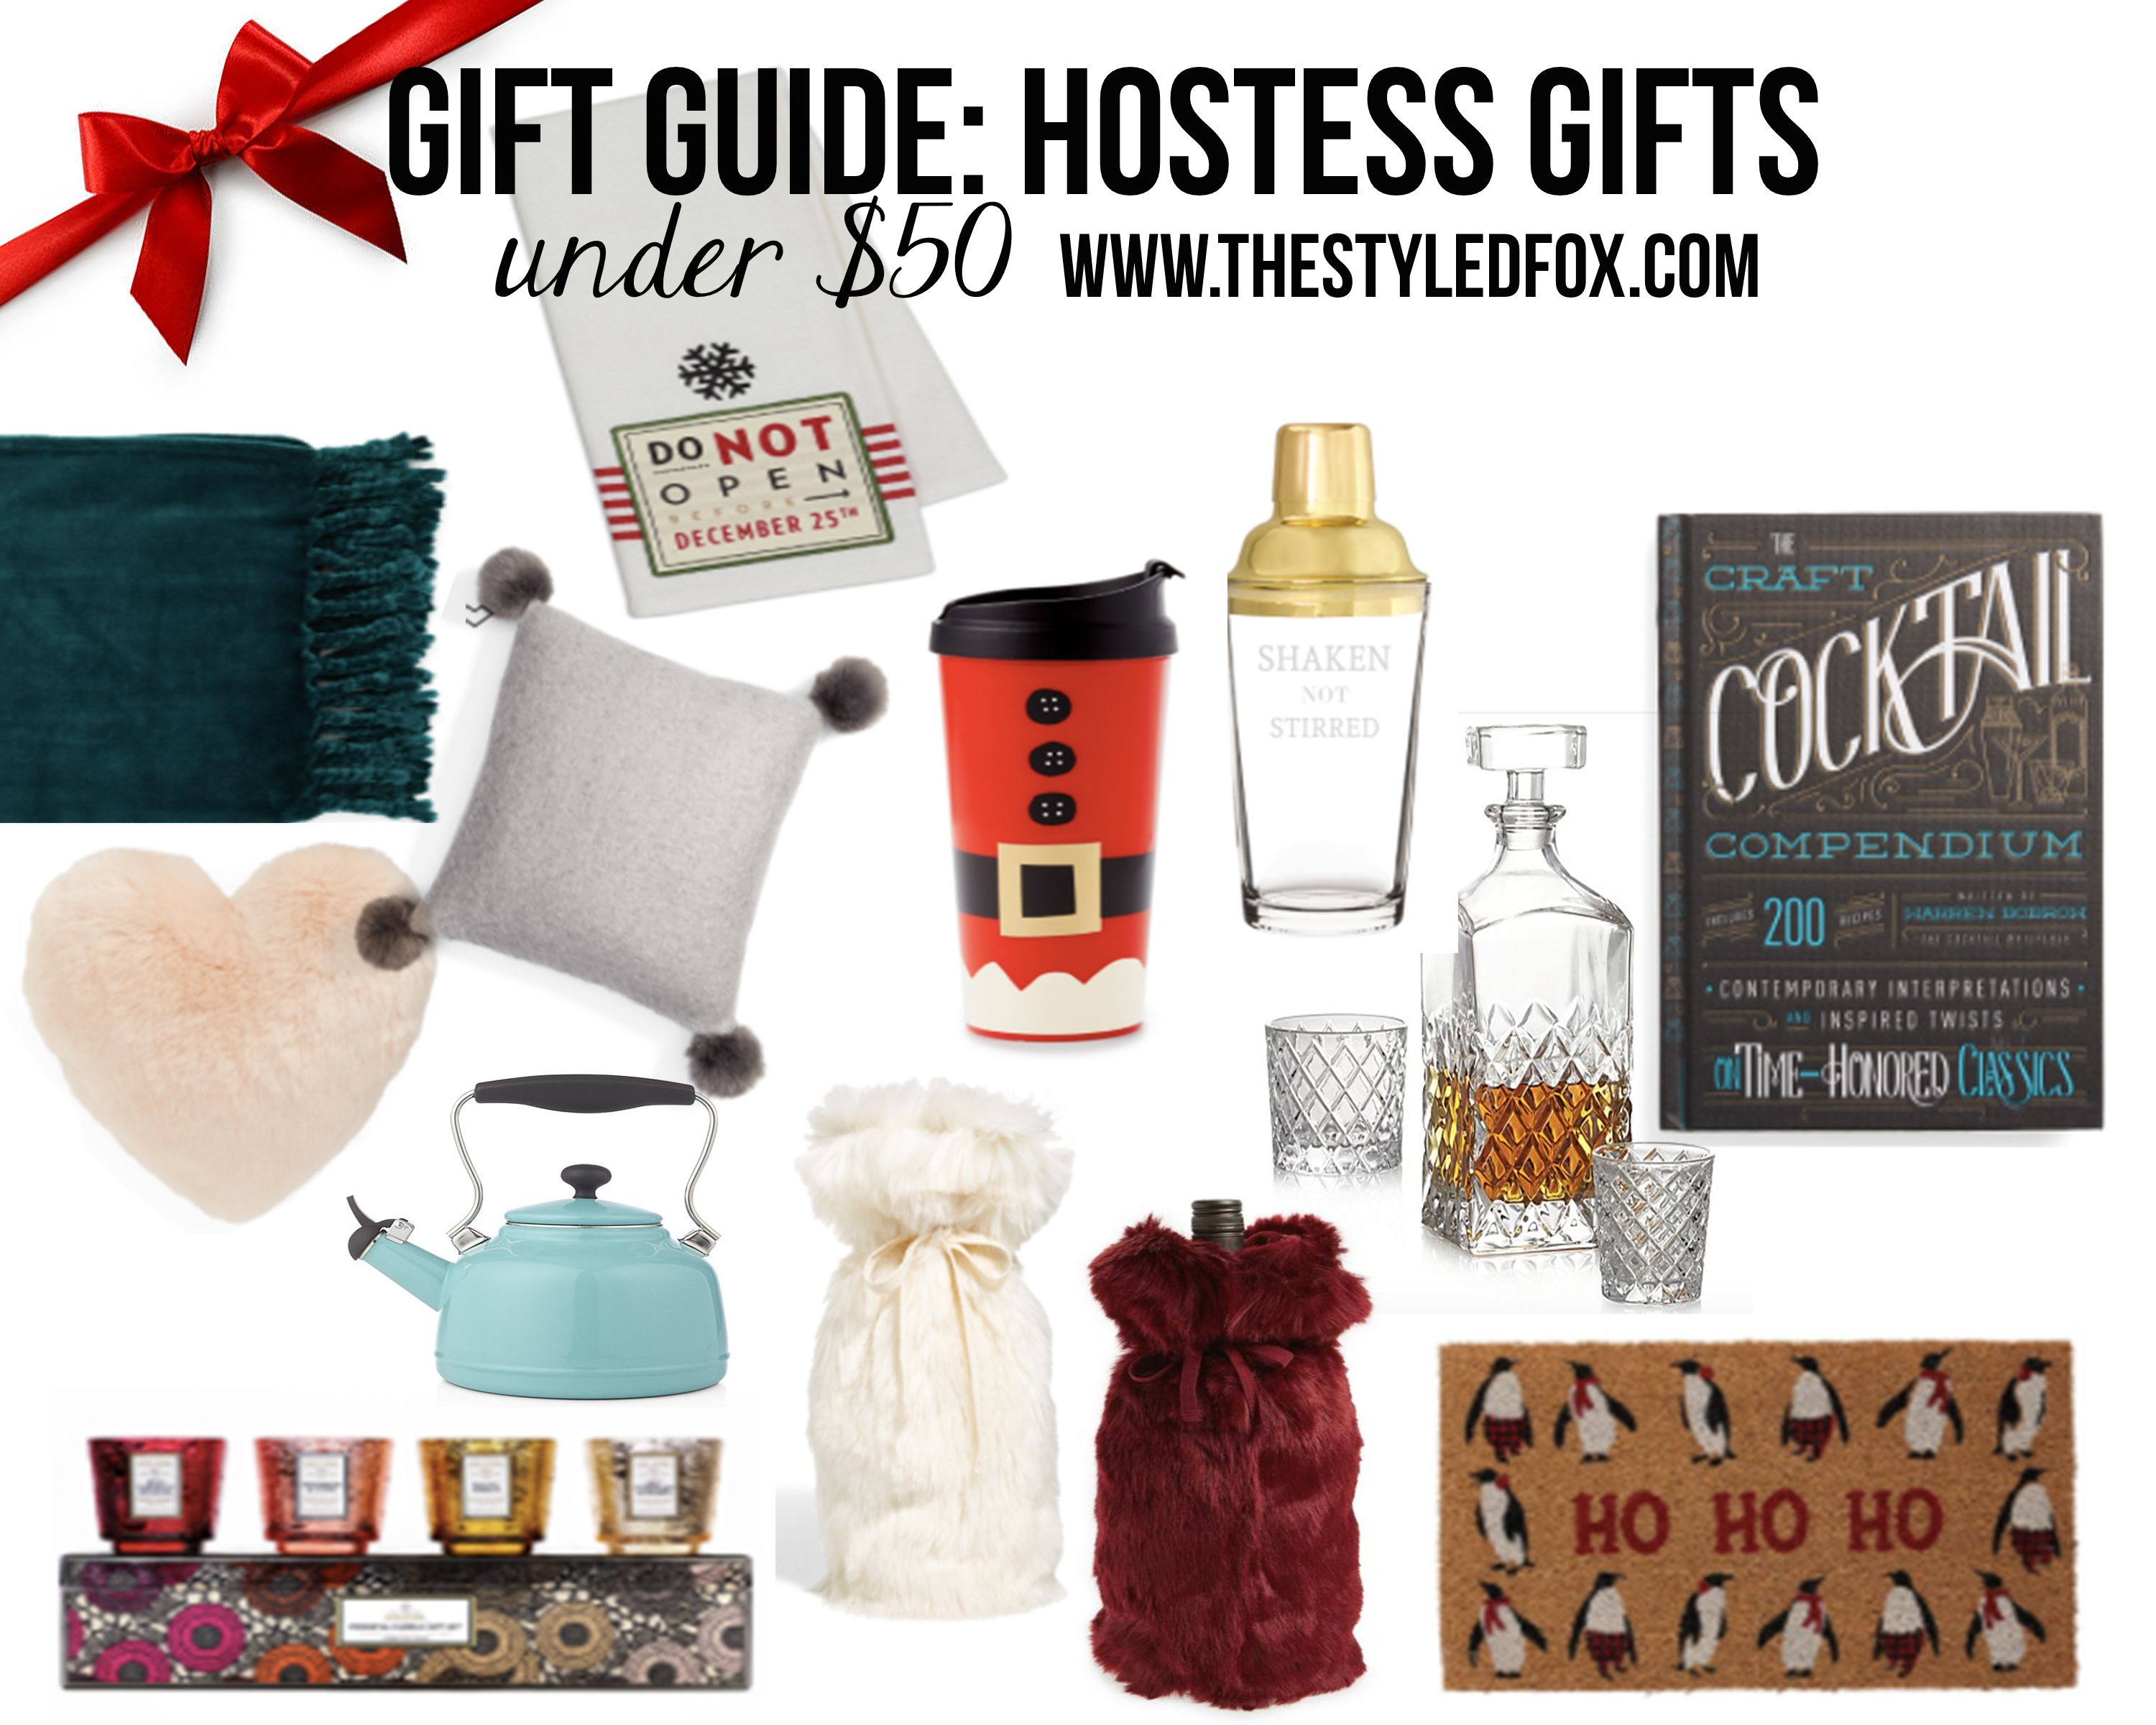 gifts for the hostess houston fashion blog the styled fox